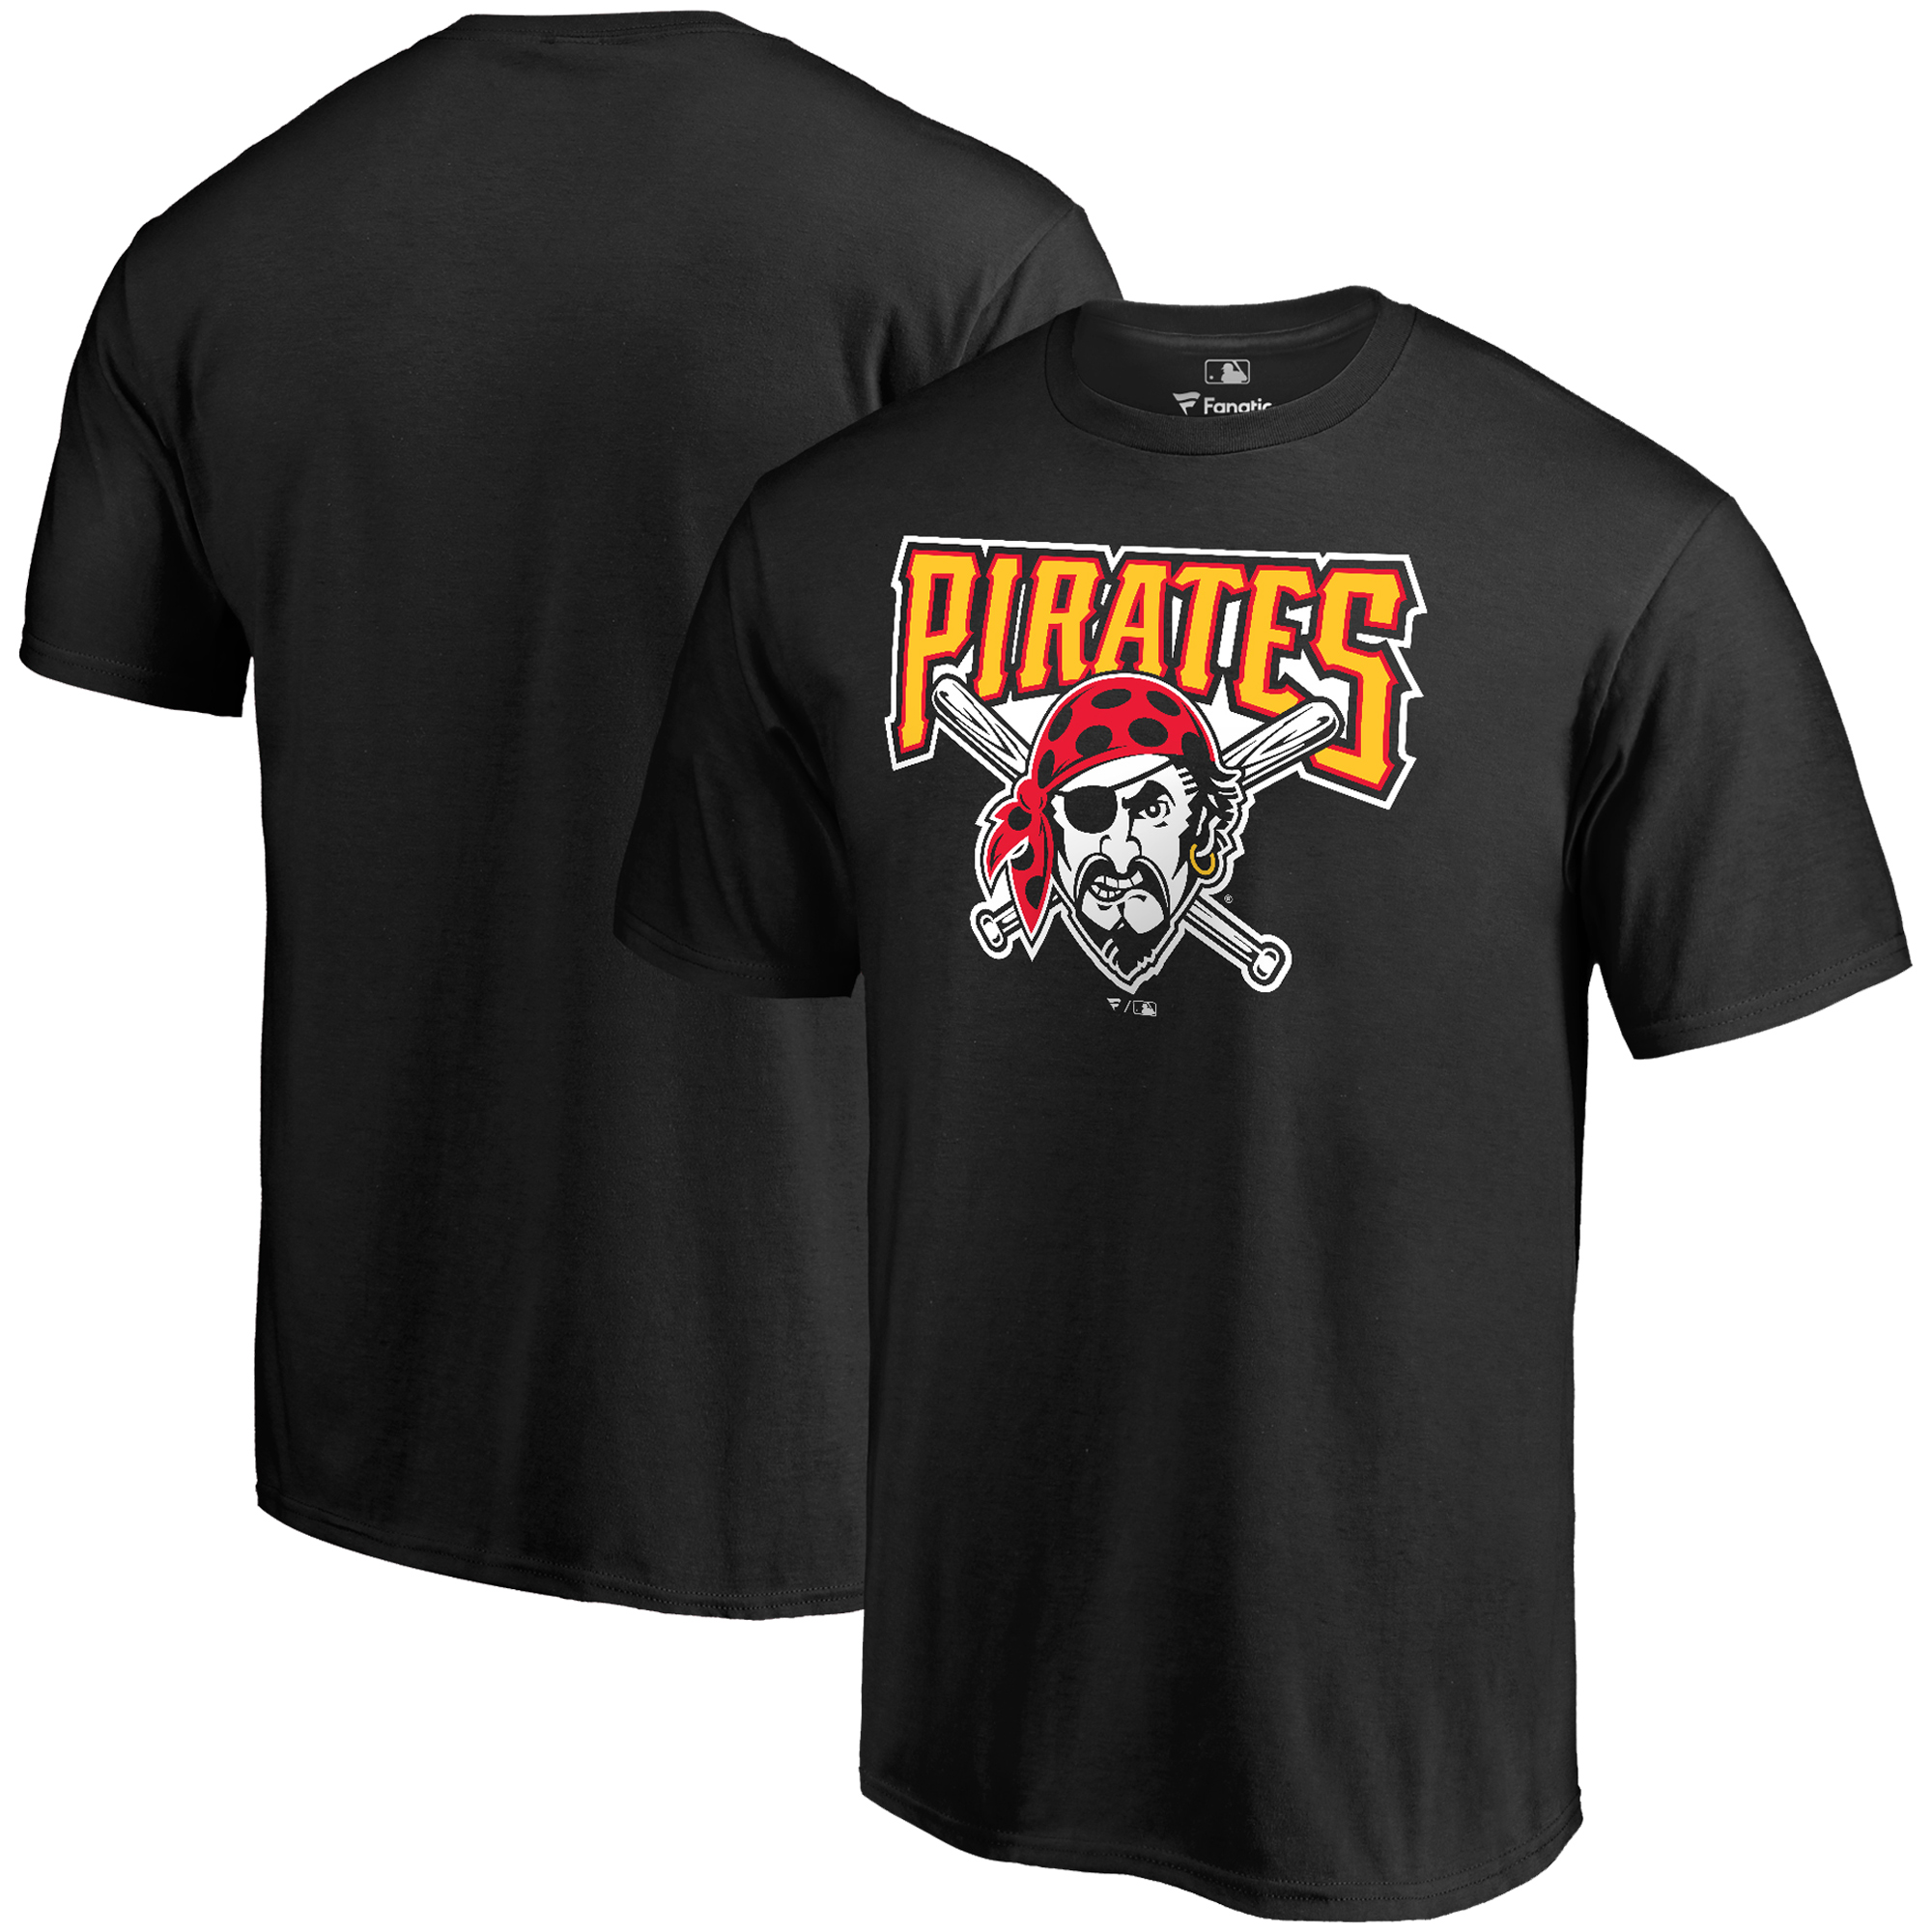 Pittsburgh Pirates Fanatics Branded Big & Tall Cooperstown Collection Huntington T-Shirt - Black